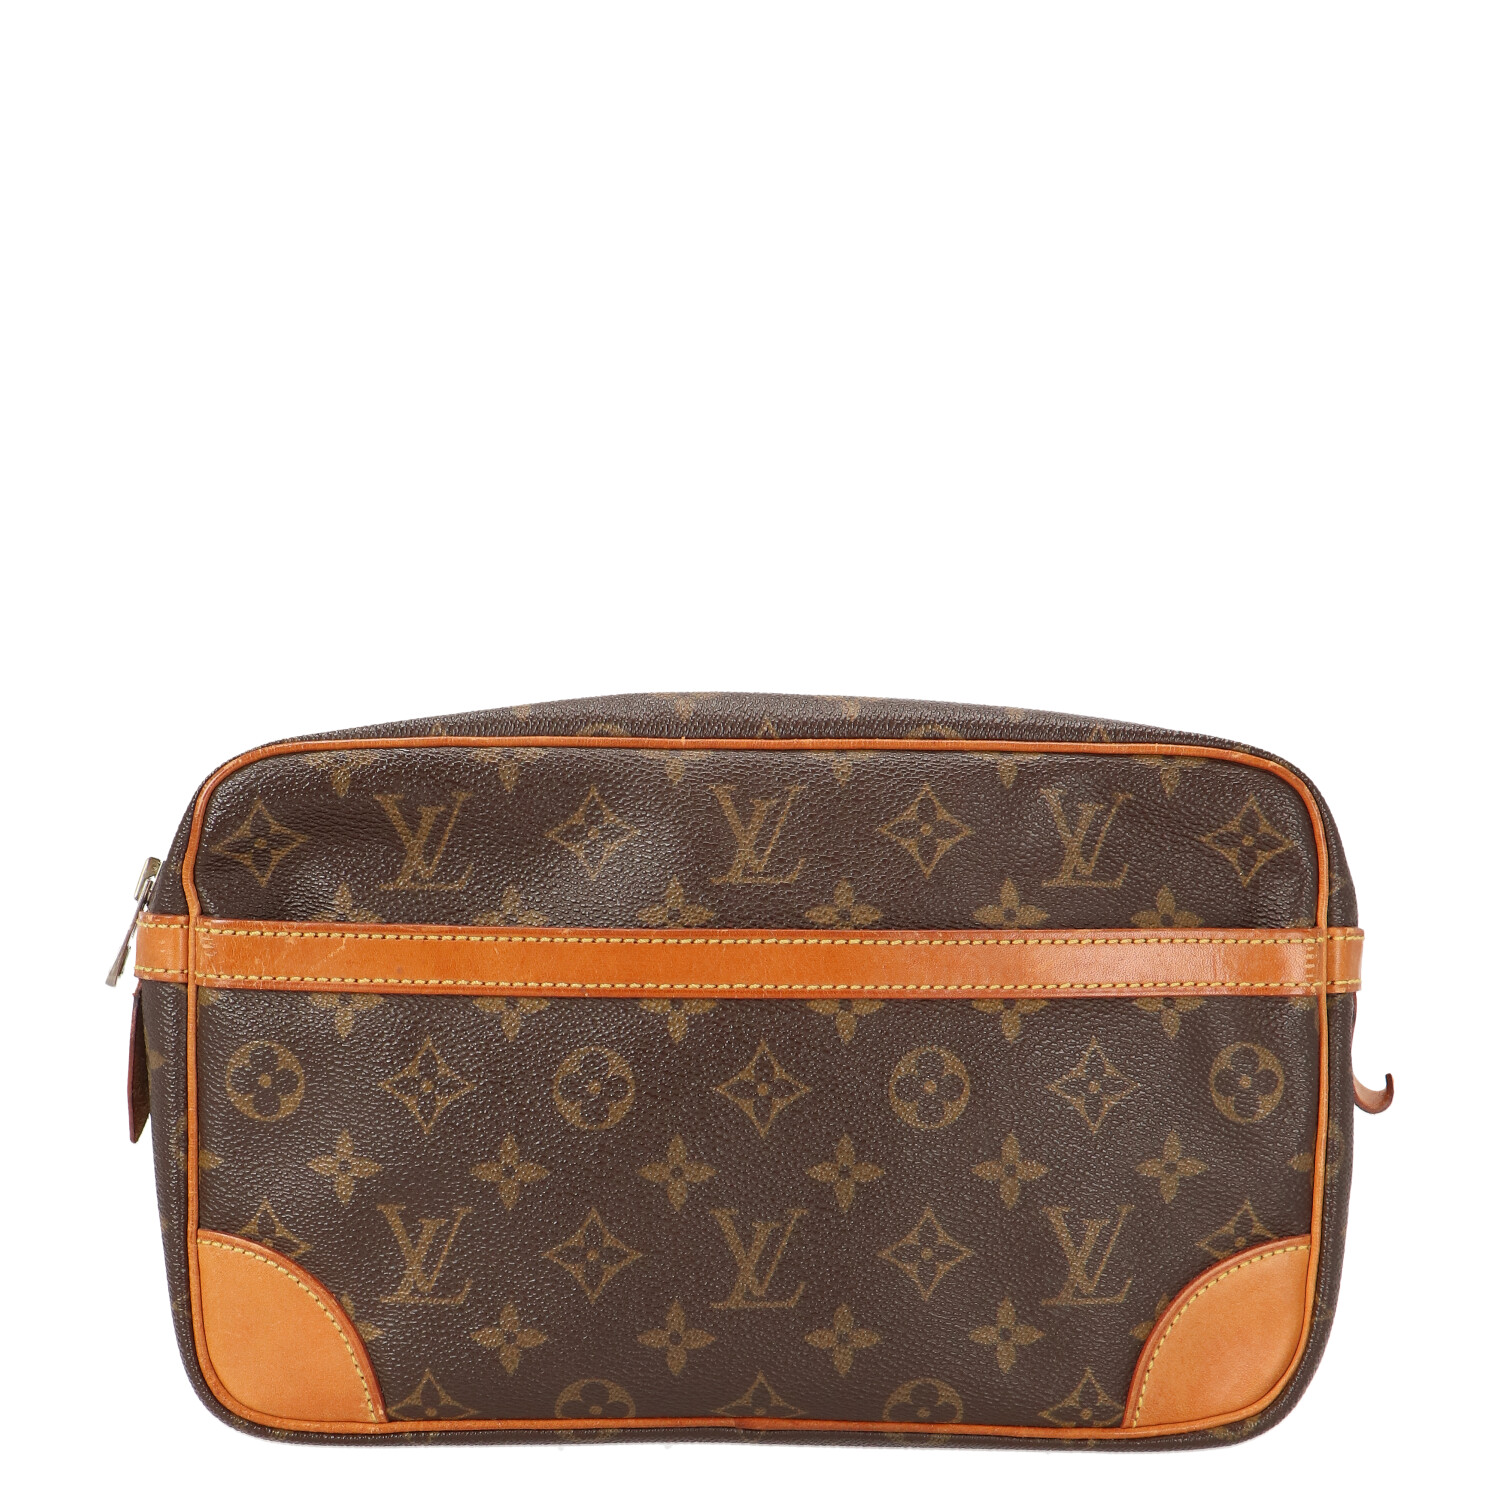 Monogram Canvas Compiegne 28